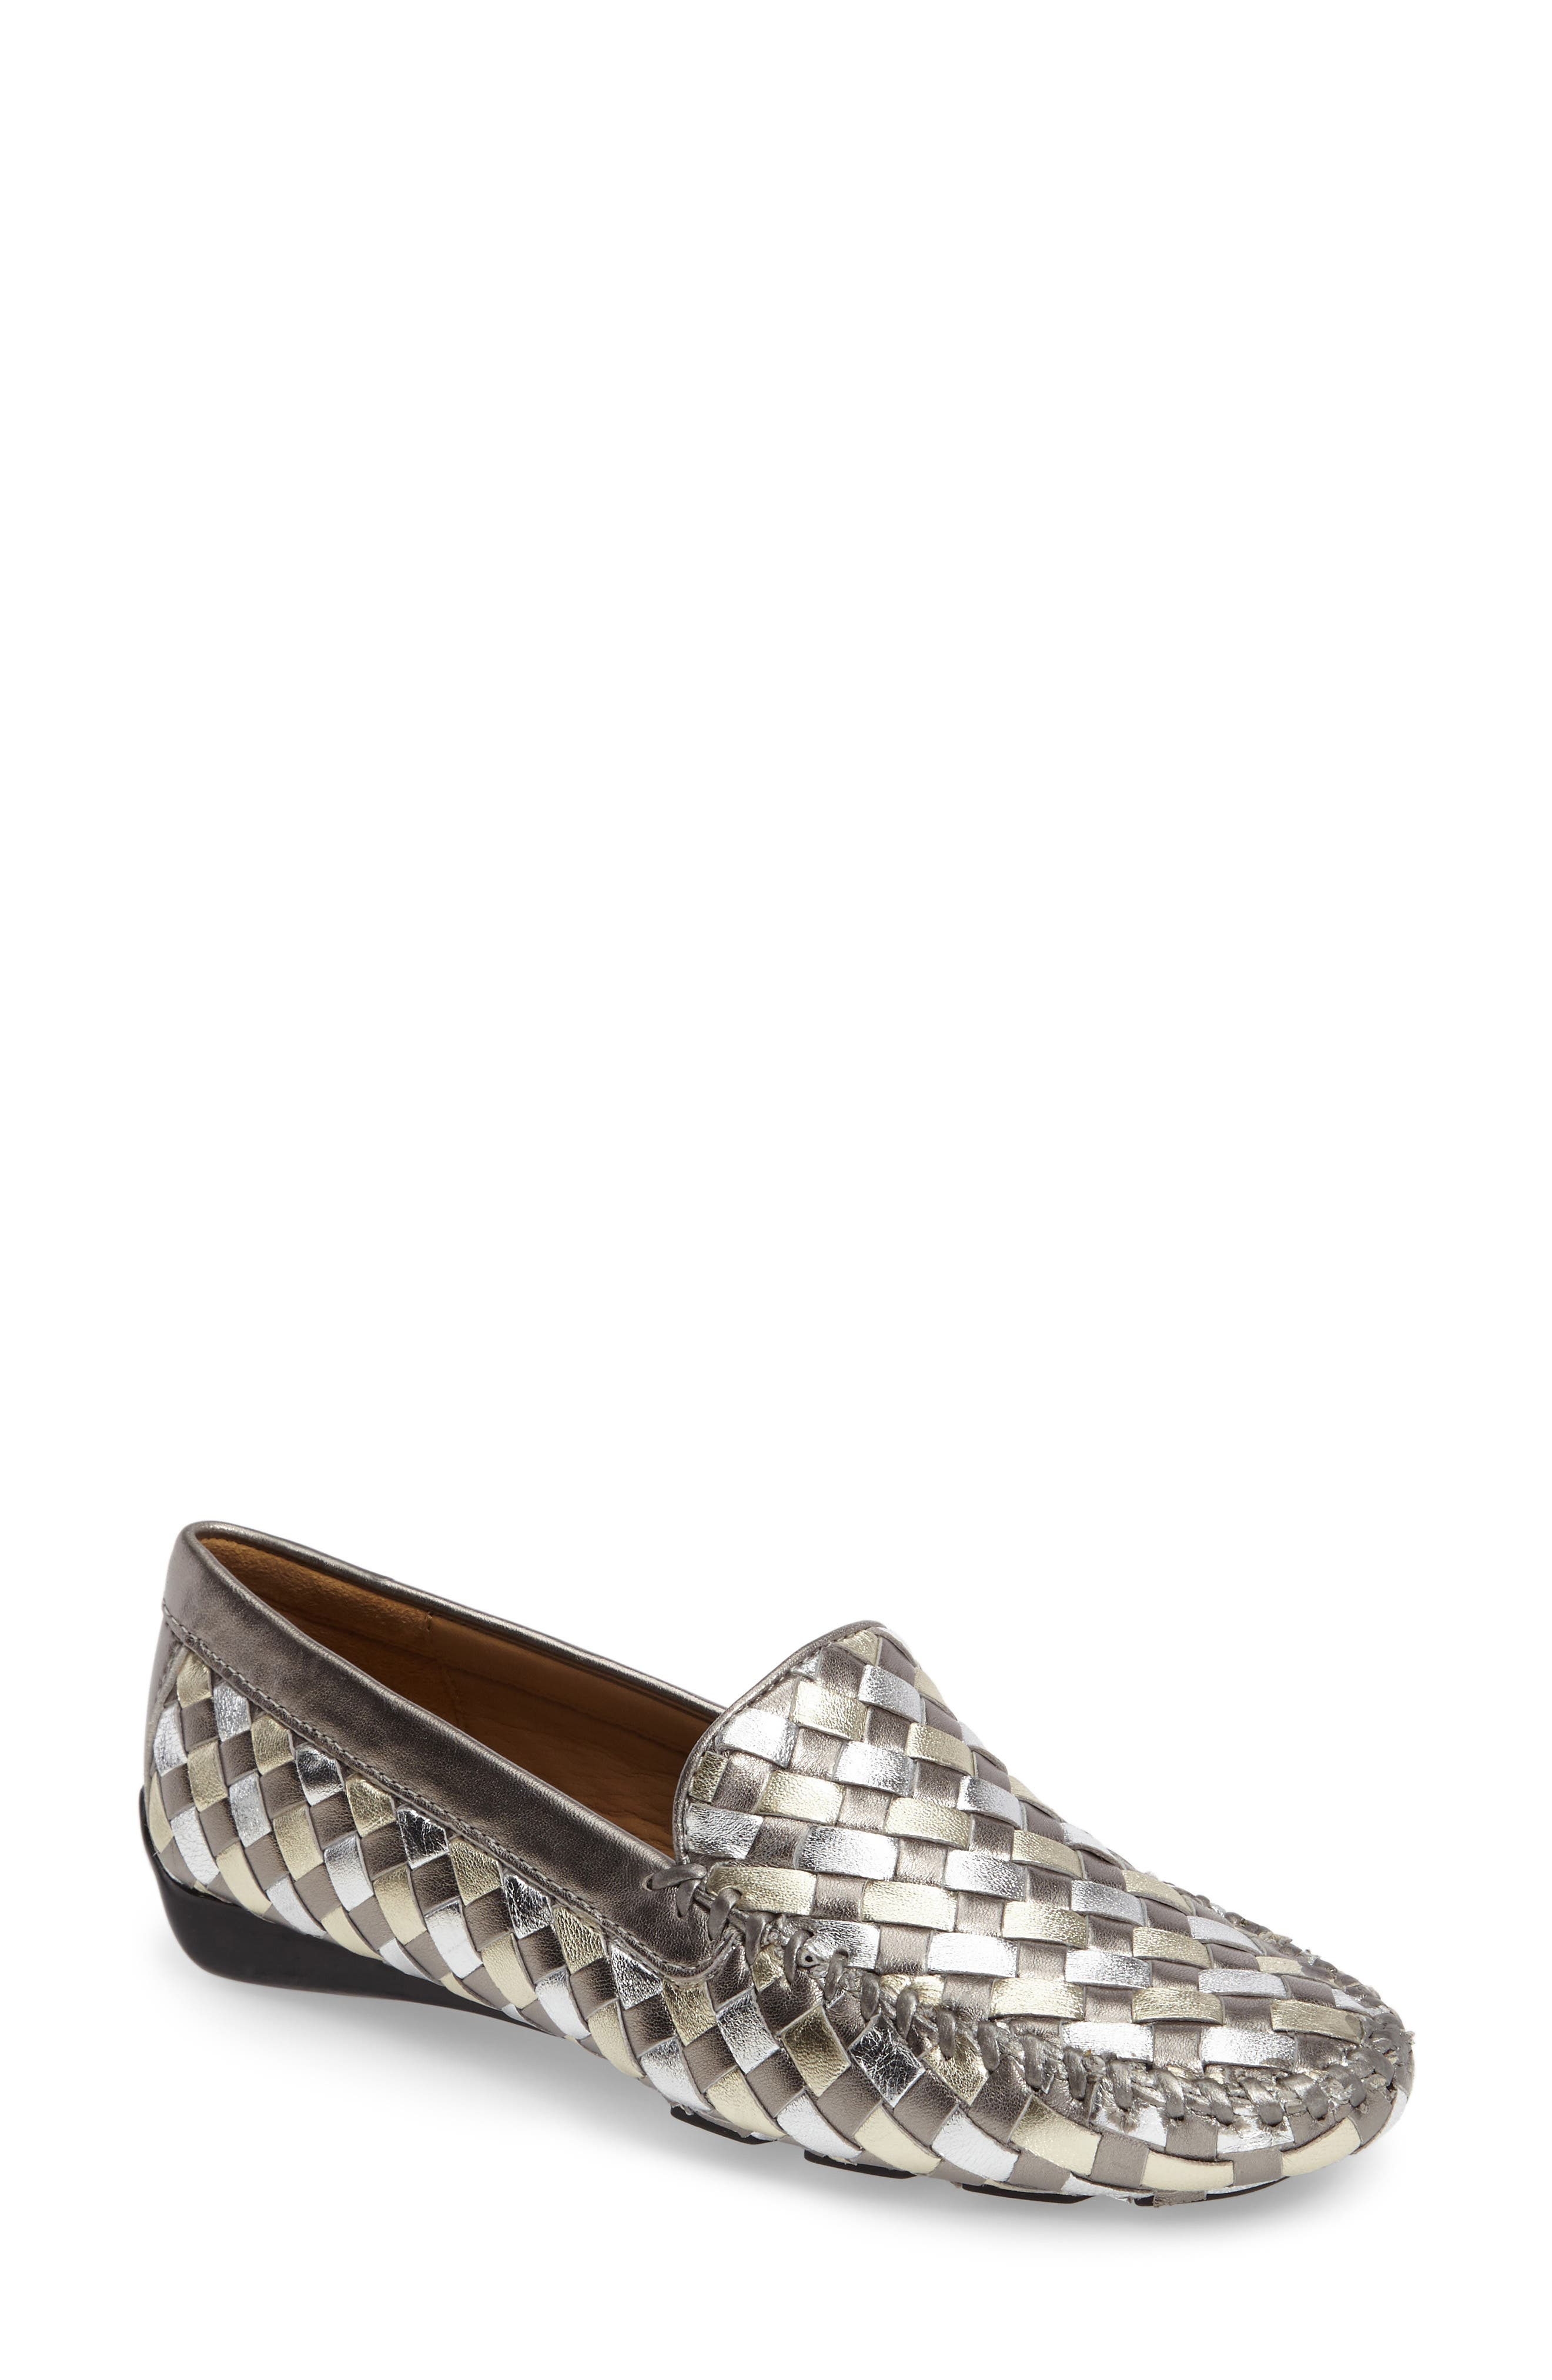 Alternate Image 1 Selected - Robert Zur Woven Venetian Loafer (Women)